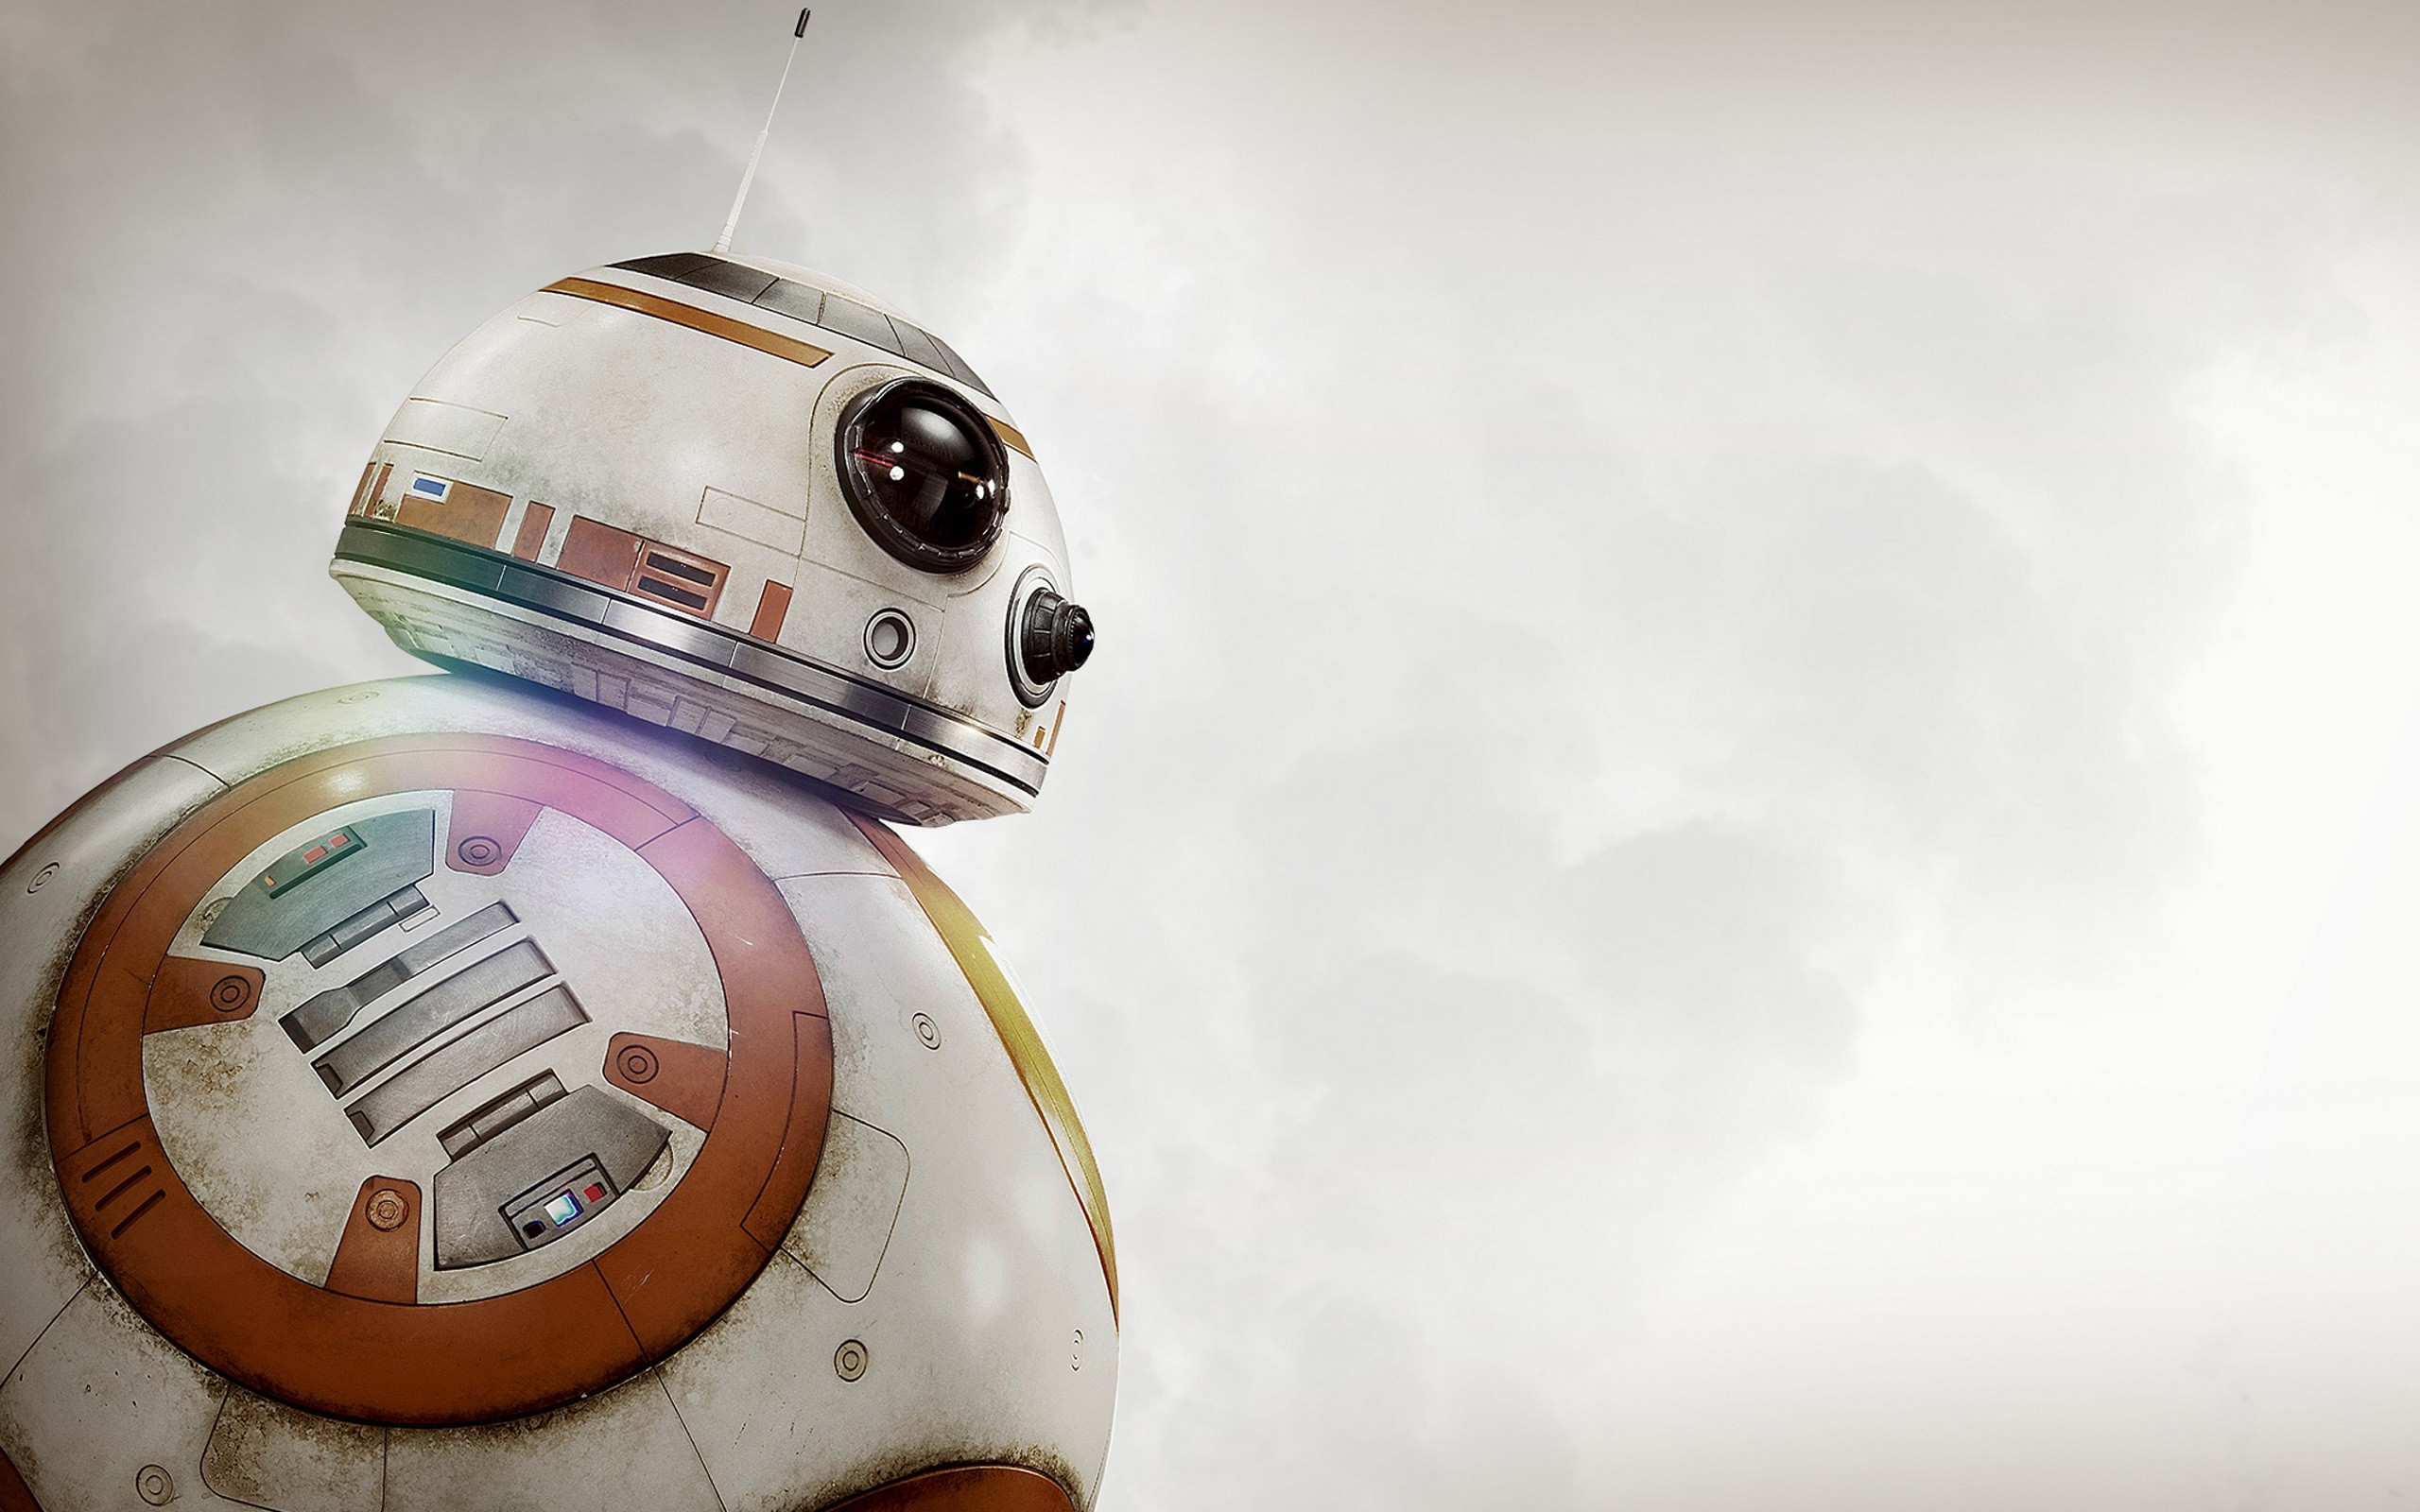 Bb8 Wallpaper Download Free Cool Backgrounds For Desktop